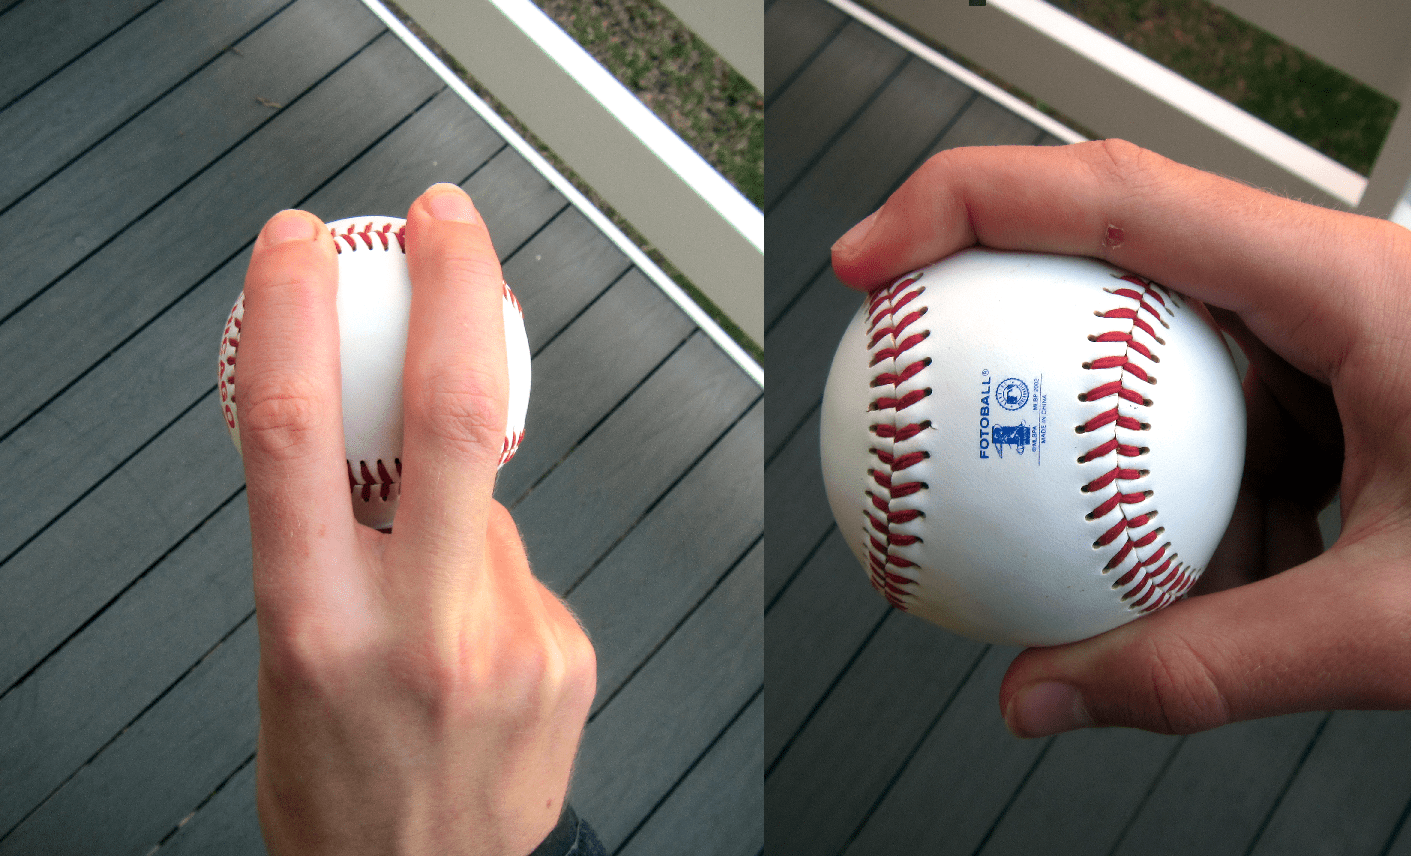 Four-seam fastball grip.